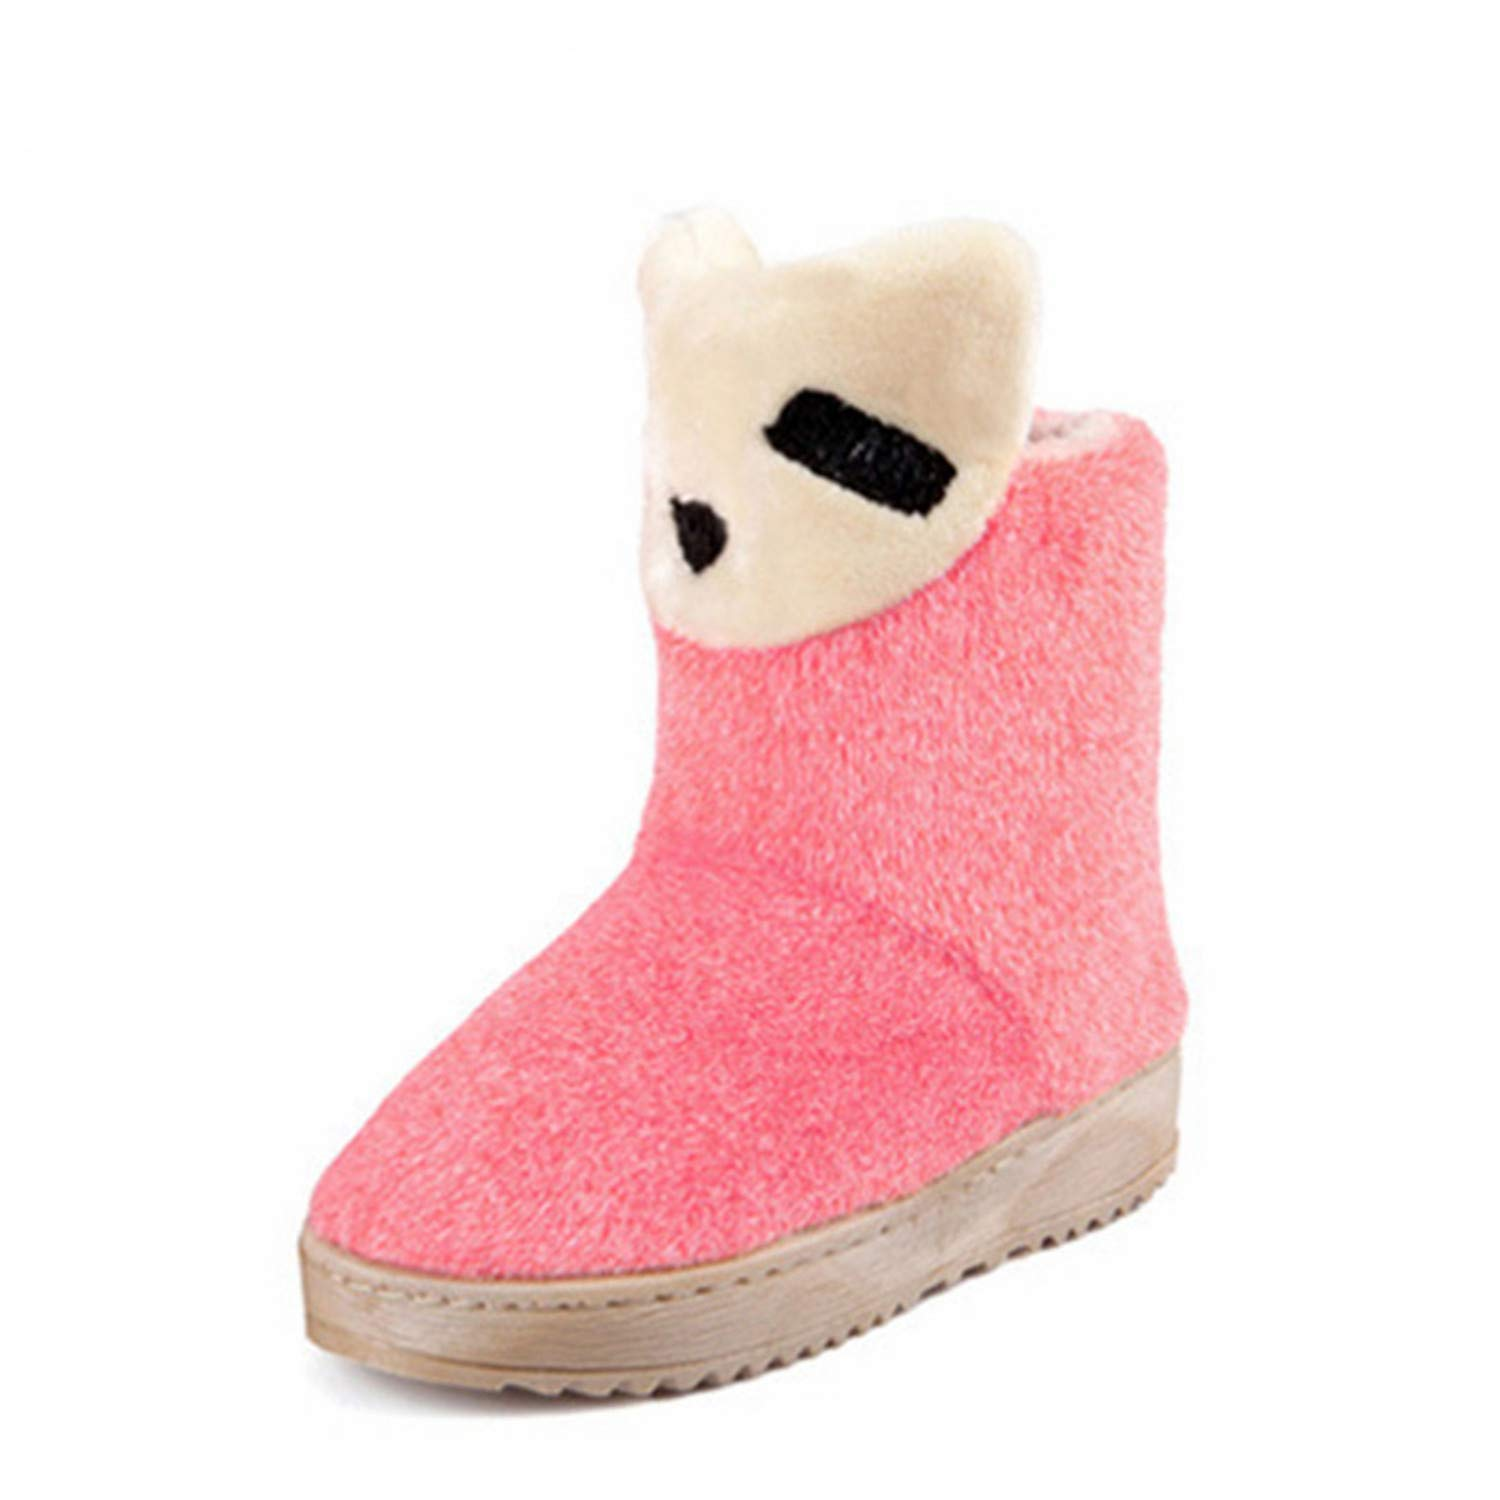 Kongsta Womens Snow Boots Winter Warm Flock Short Plush Indoor Shoes Casual Slip-On Thick Bottom Non-Slip Home Footwear